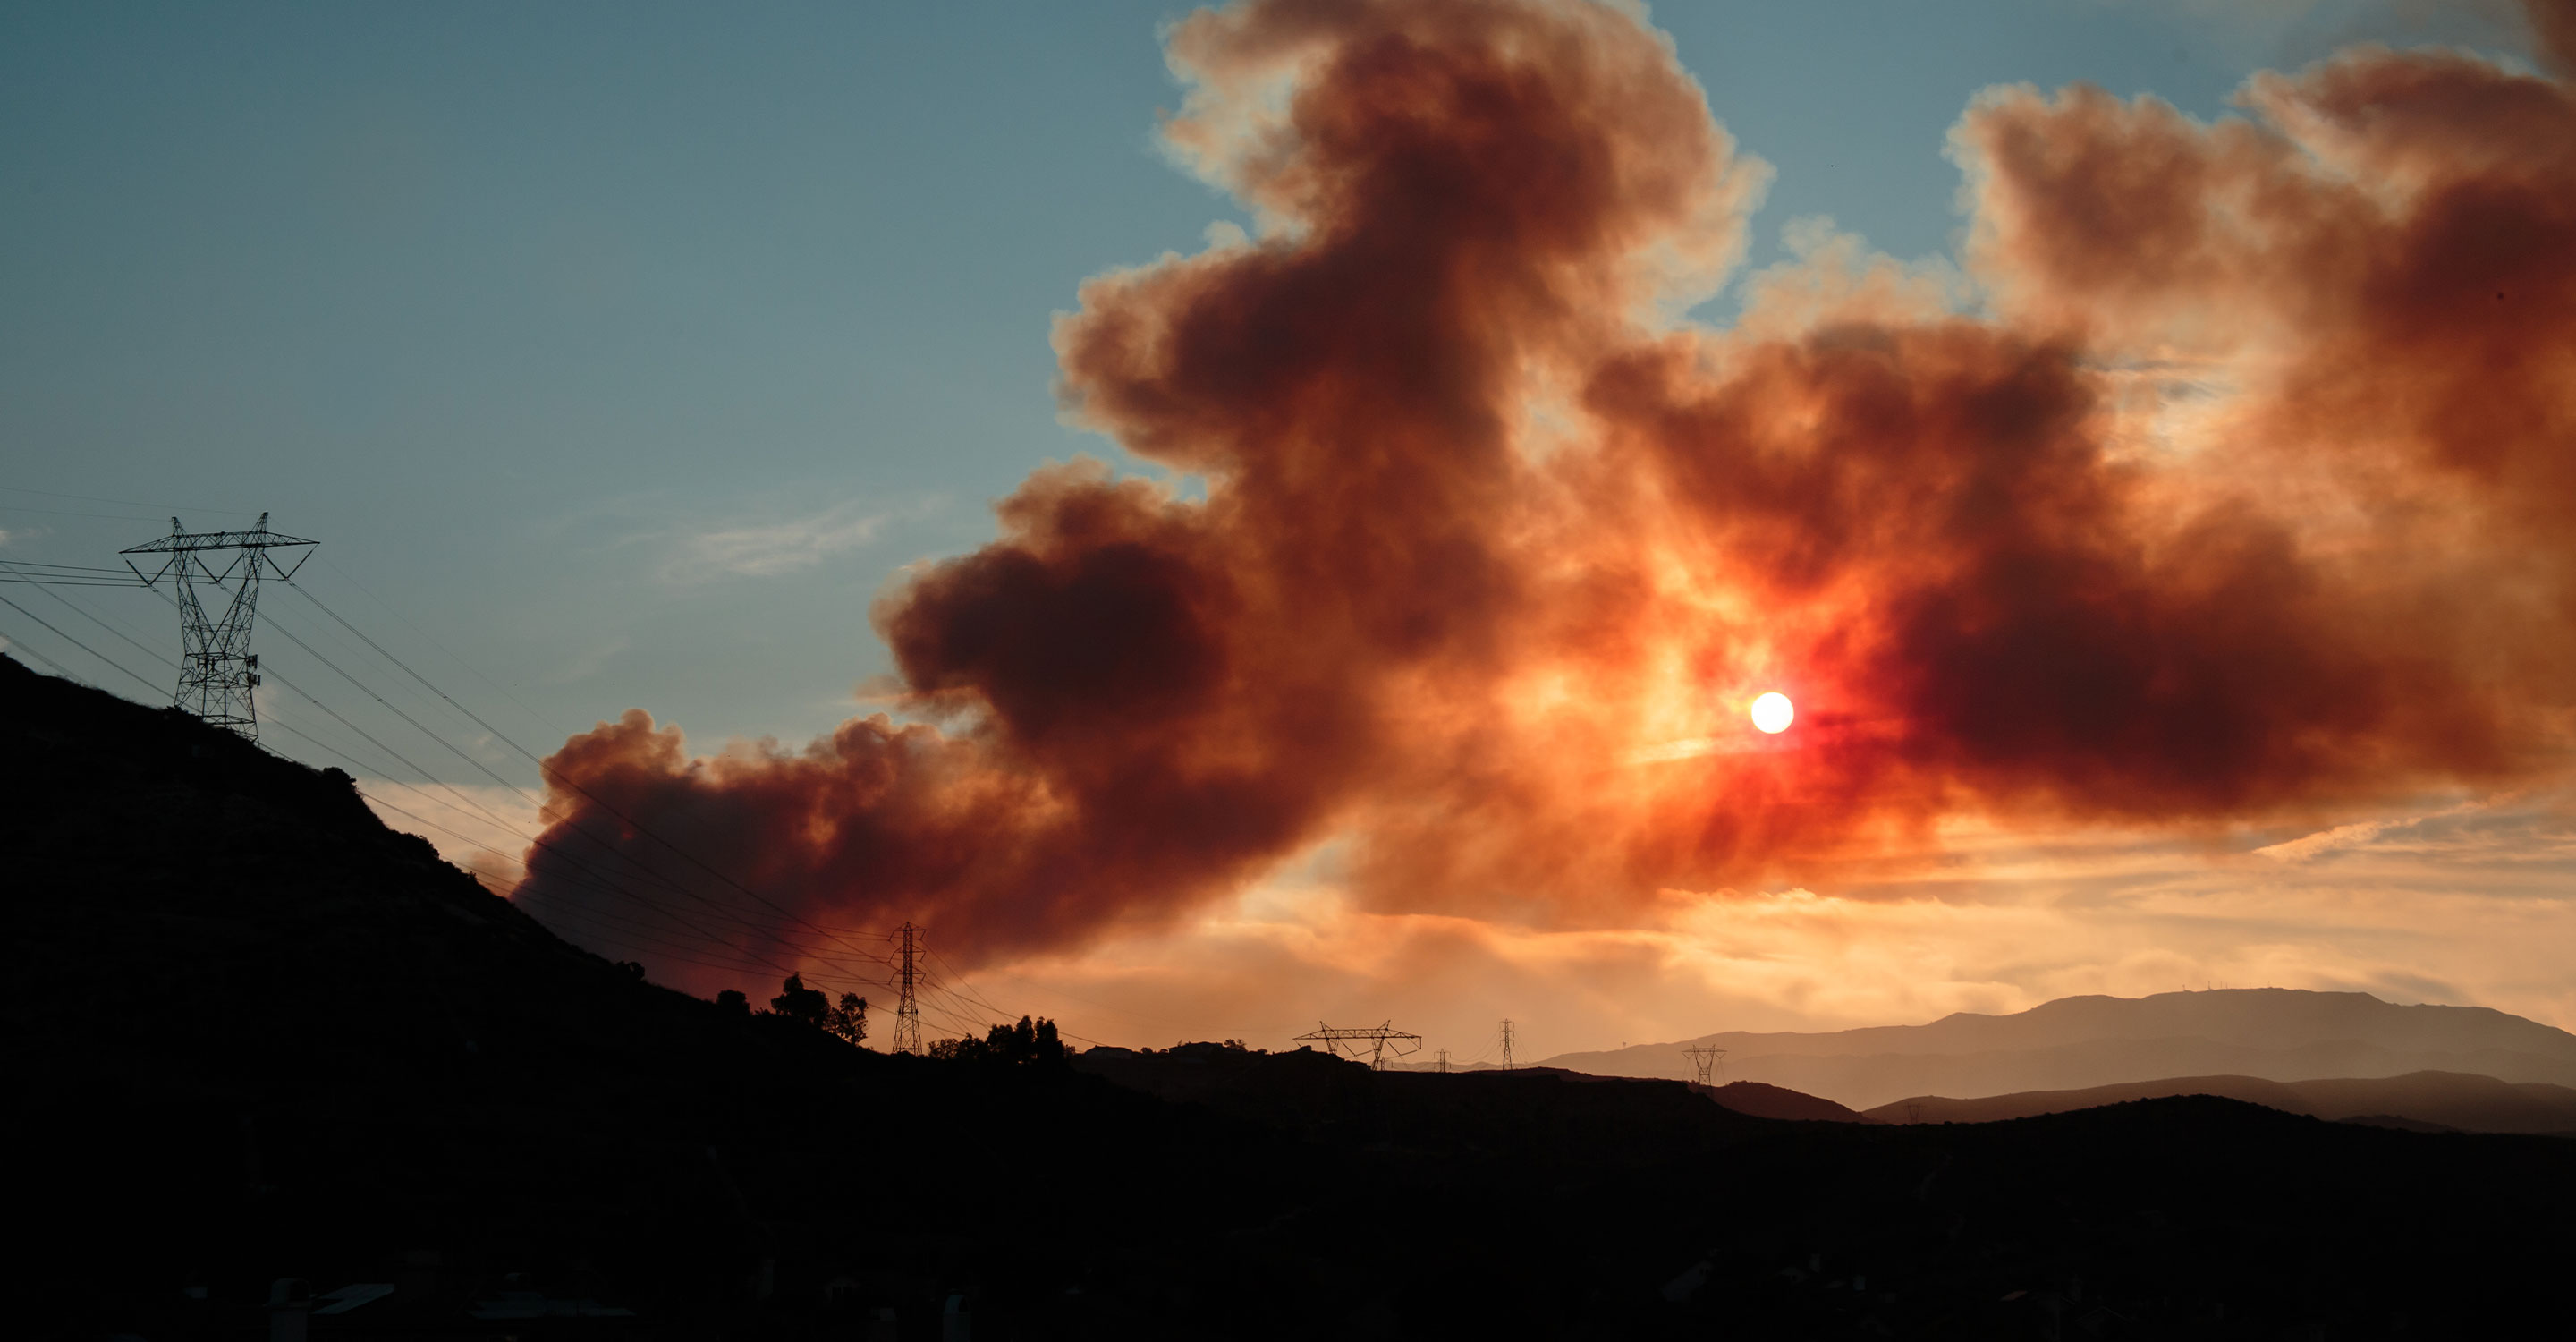 Fall 2019 California fires: The Getty, Kincade, and Grizzly Island Fires